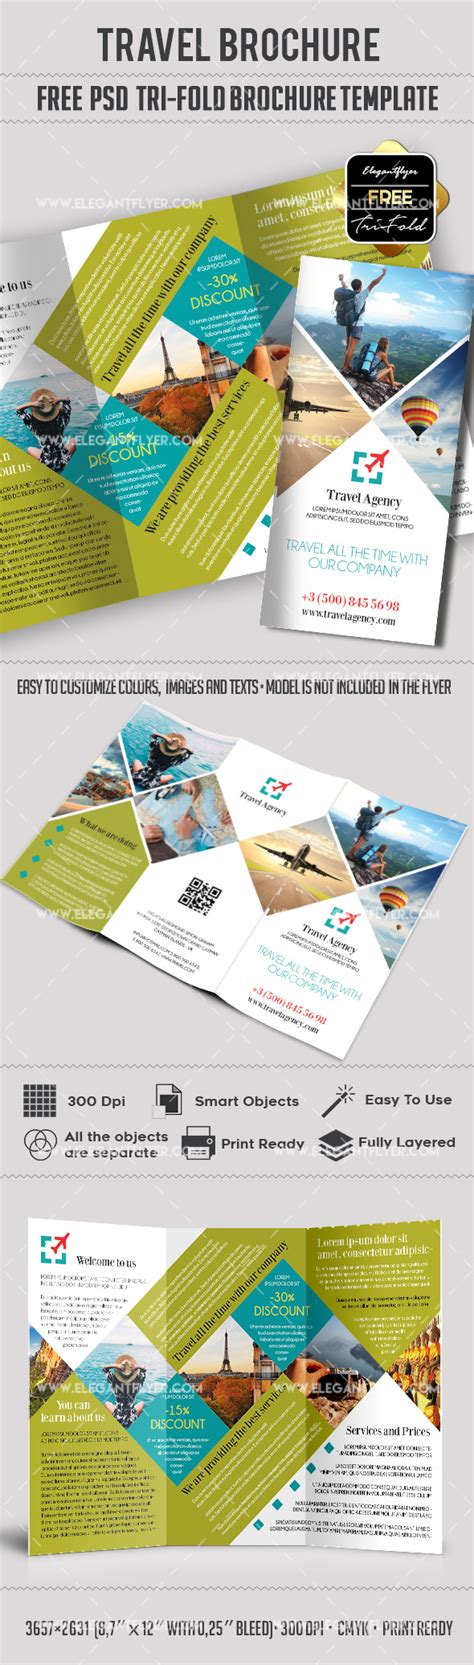 3d Brochure Templates Psd by Travel Free Psd Tri Fold Psd Brochure Template By